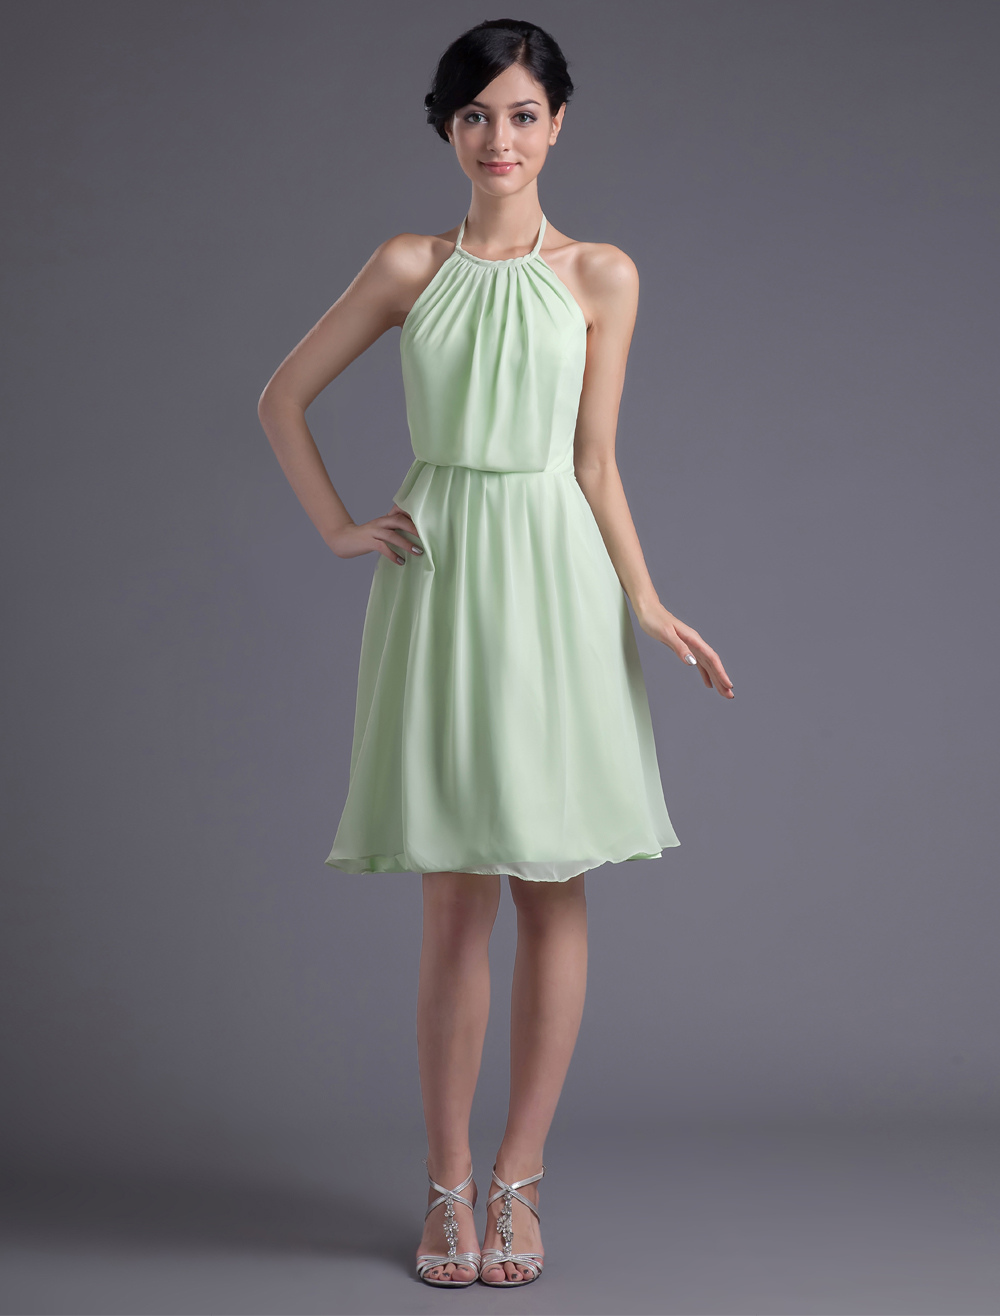 Green Chiffon Halter Knee-Length Fashion Bridesmaid Dress